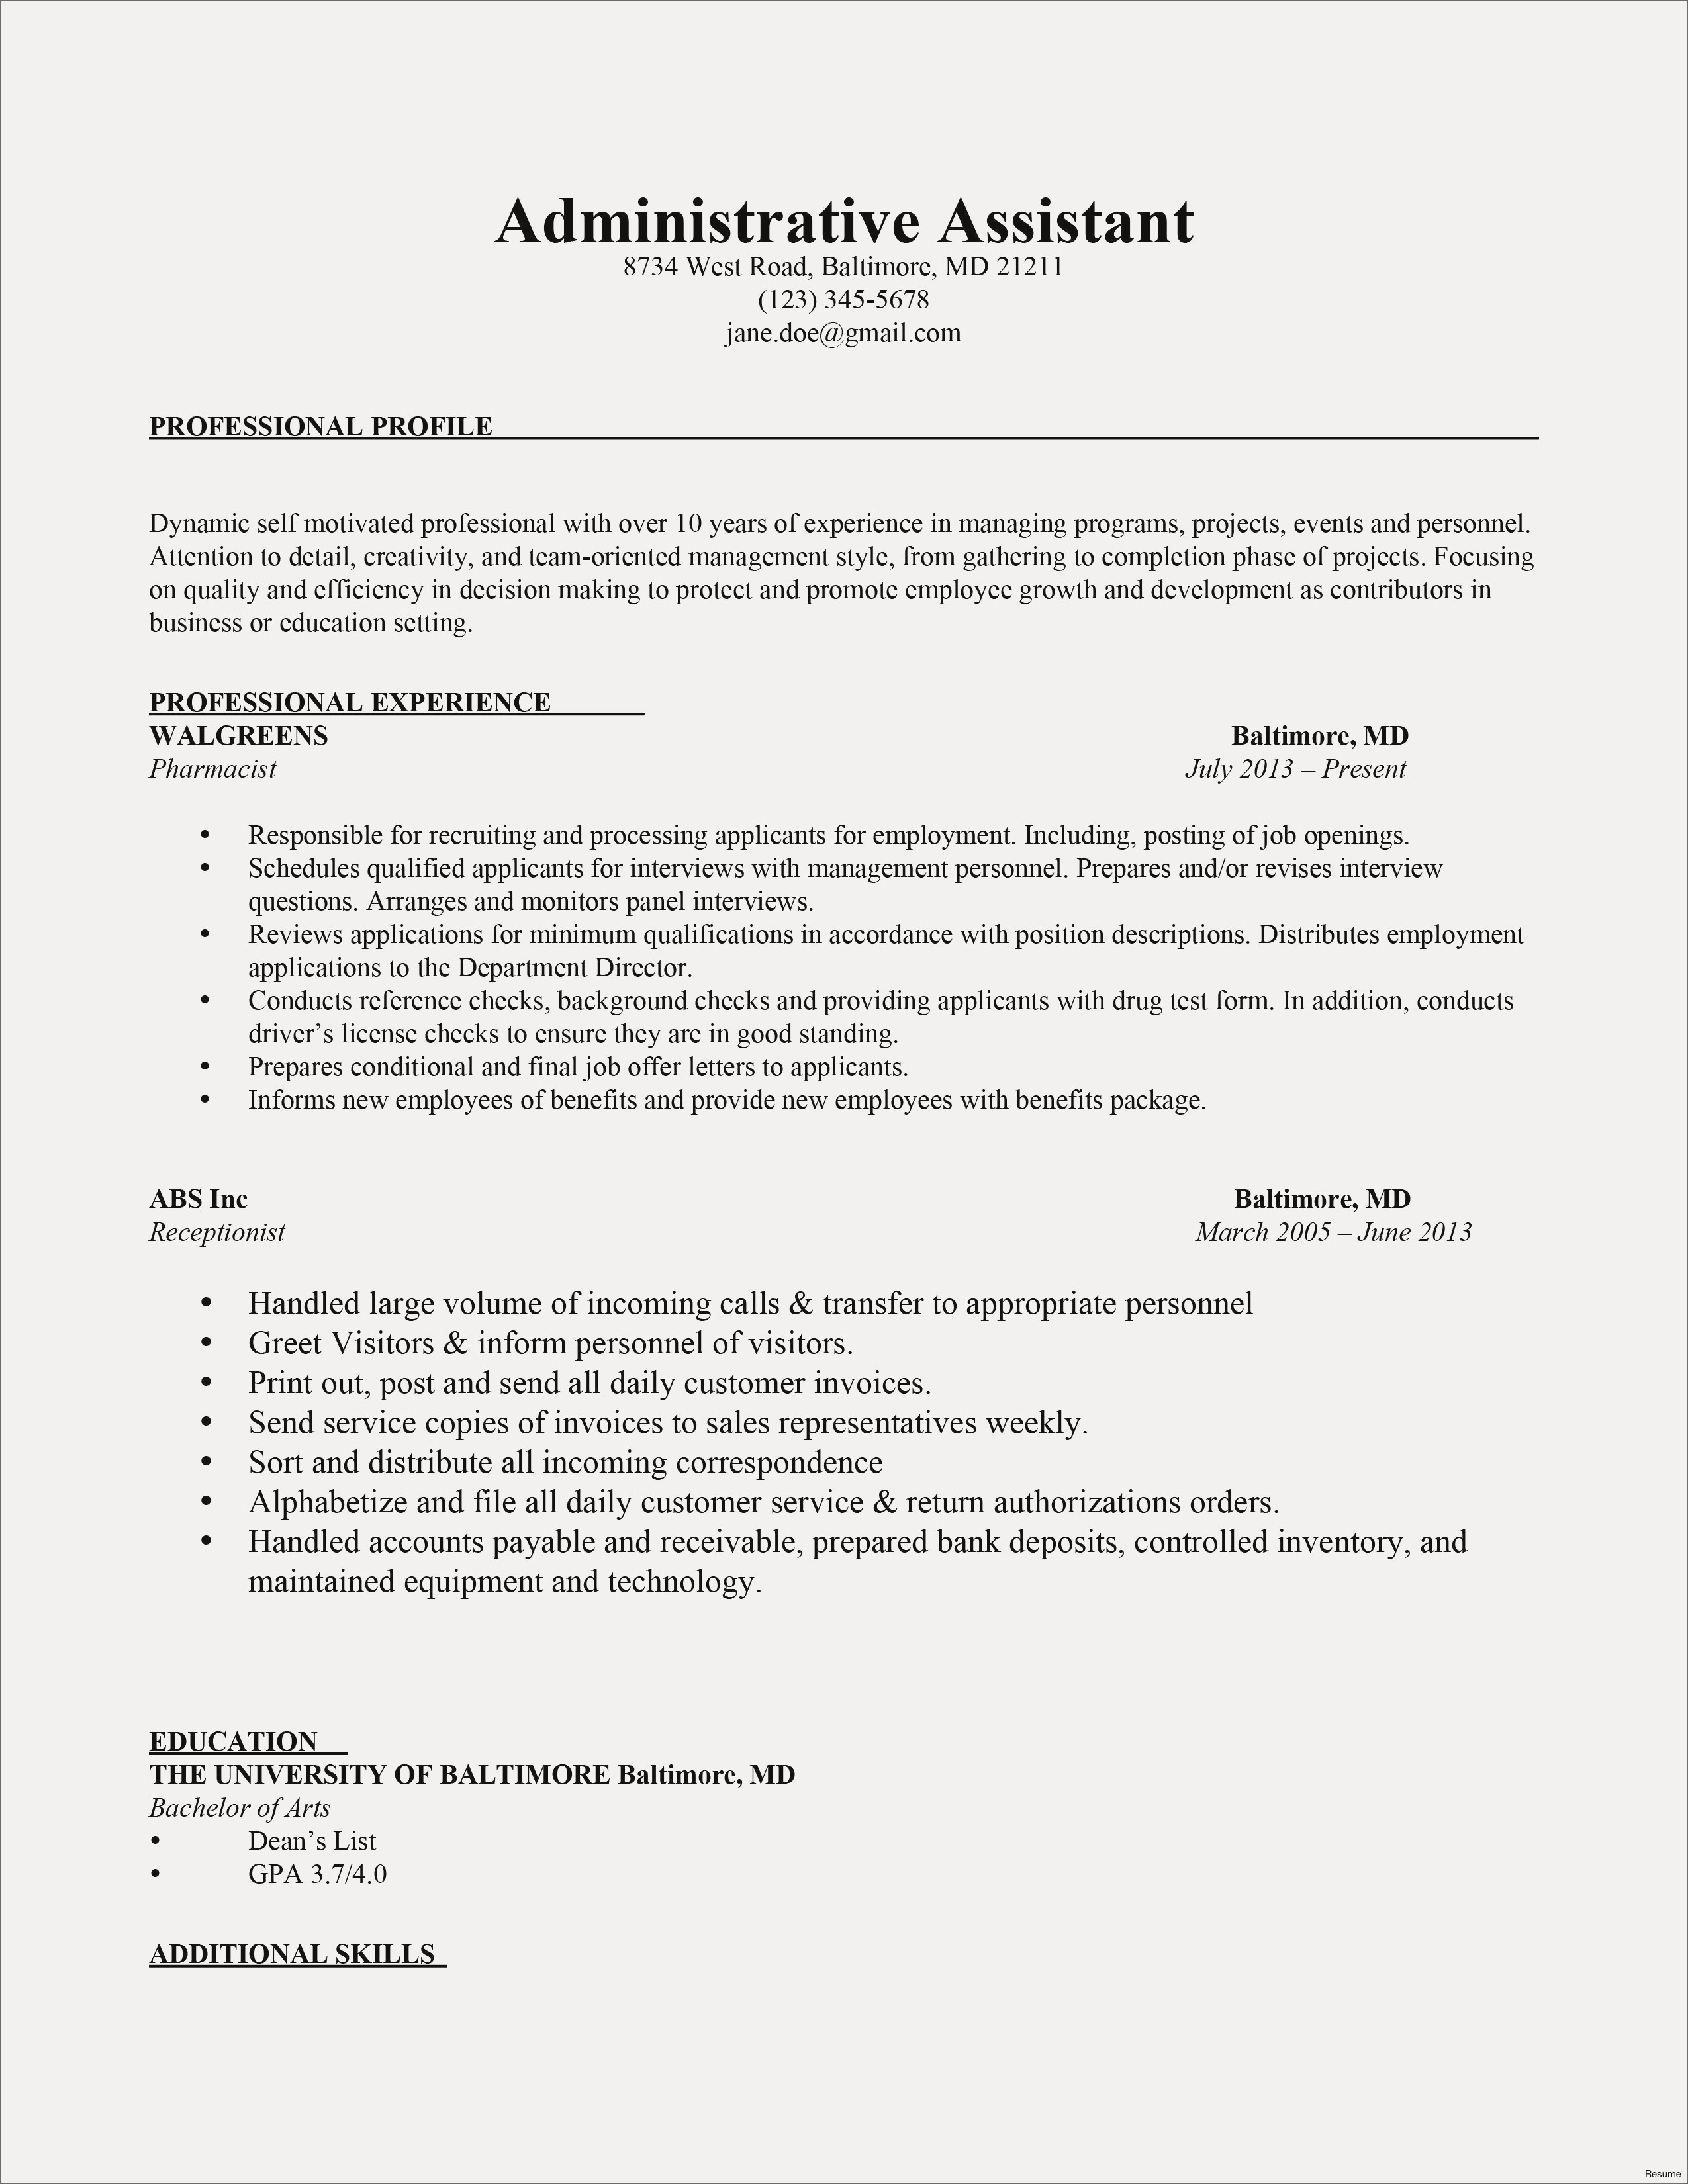 profile on a resume example-Example Resume Profiles Fresh Profile Resume Examples Unique Cto Resume 0d Wallpapers 50 Skills 13-h